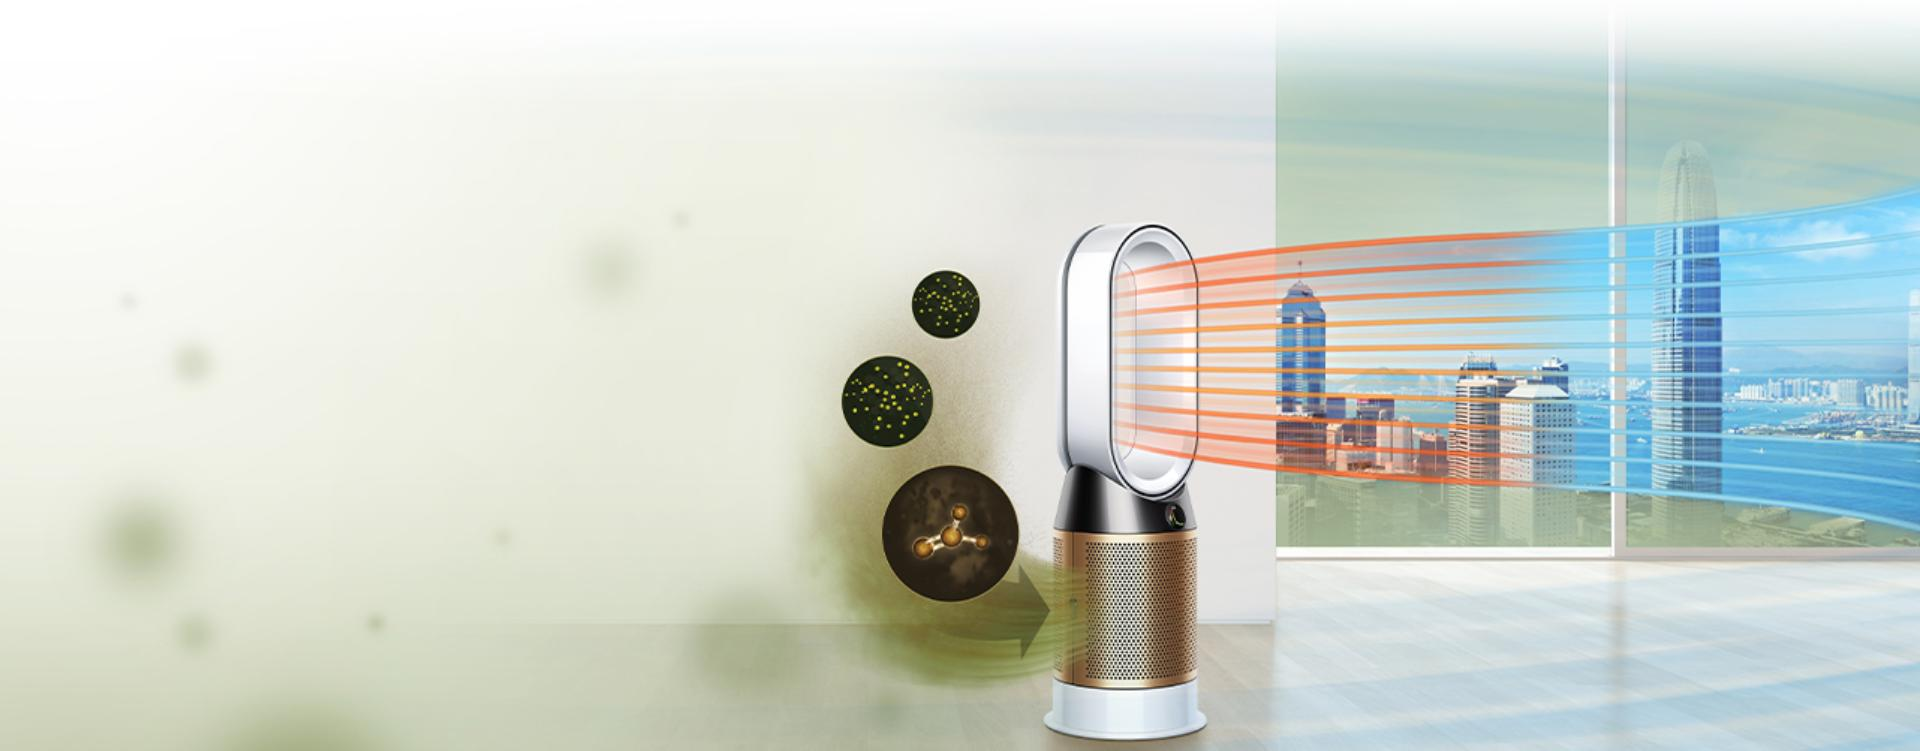 A man paints a room, while formaldehyde gas pollutes the air around him. The Dyson Pure Cryptomic purifier draws in the pollution and projects purified air.